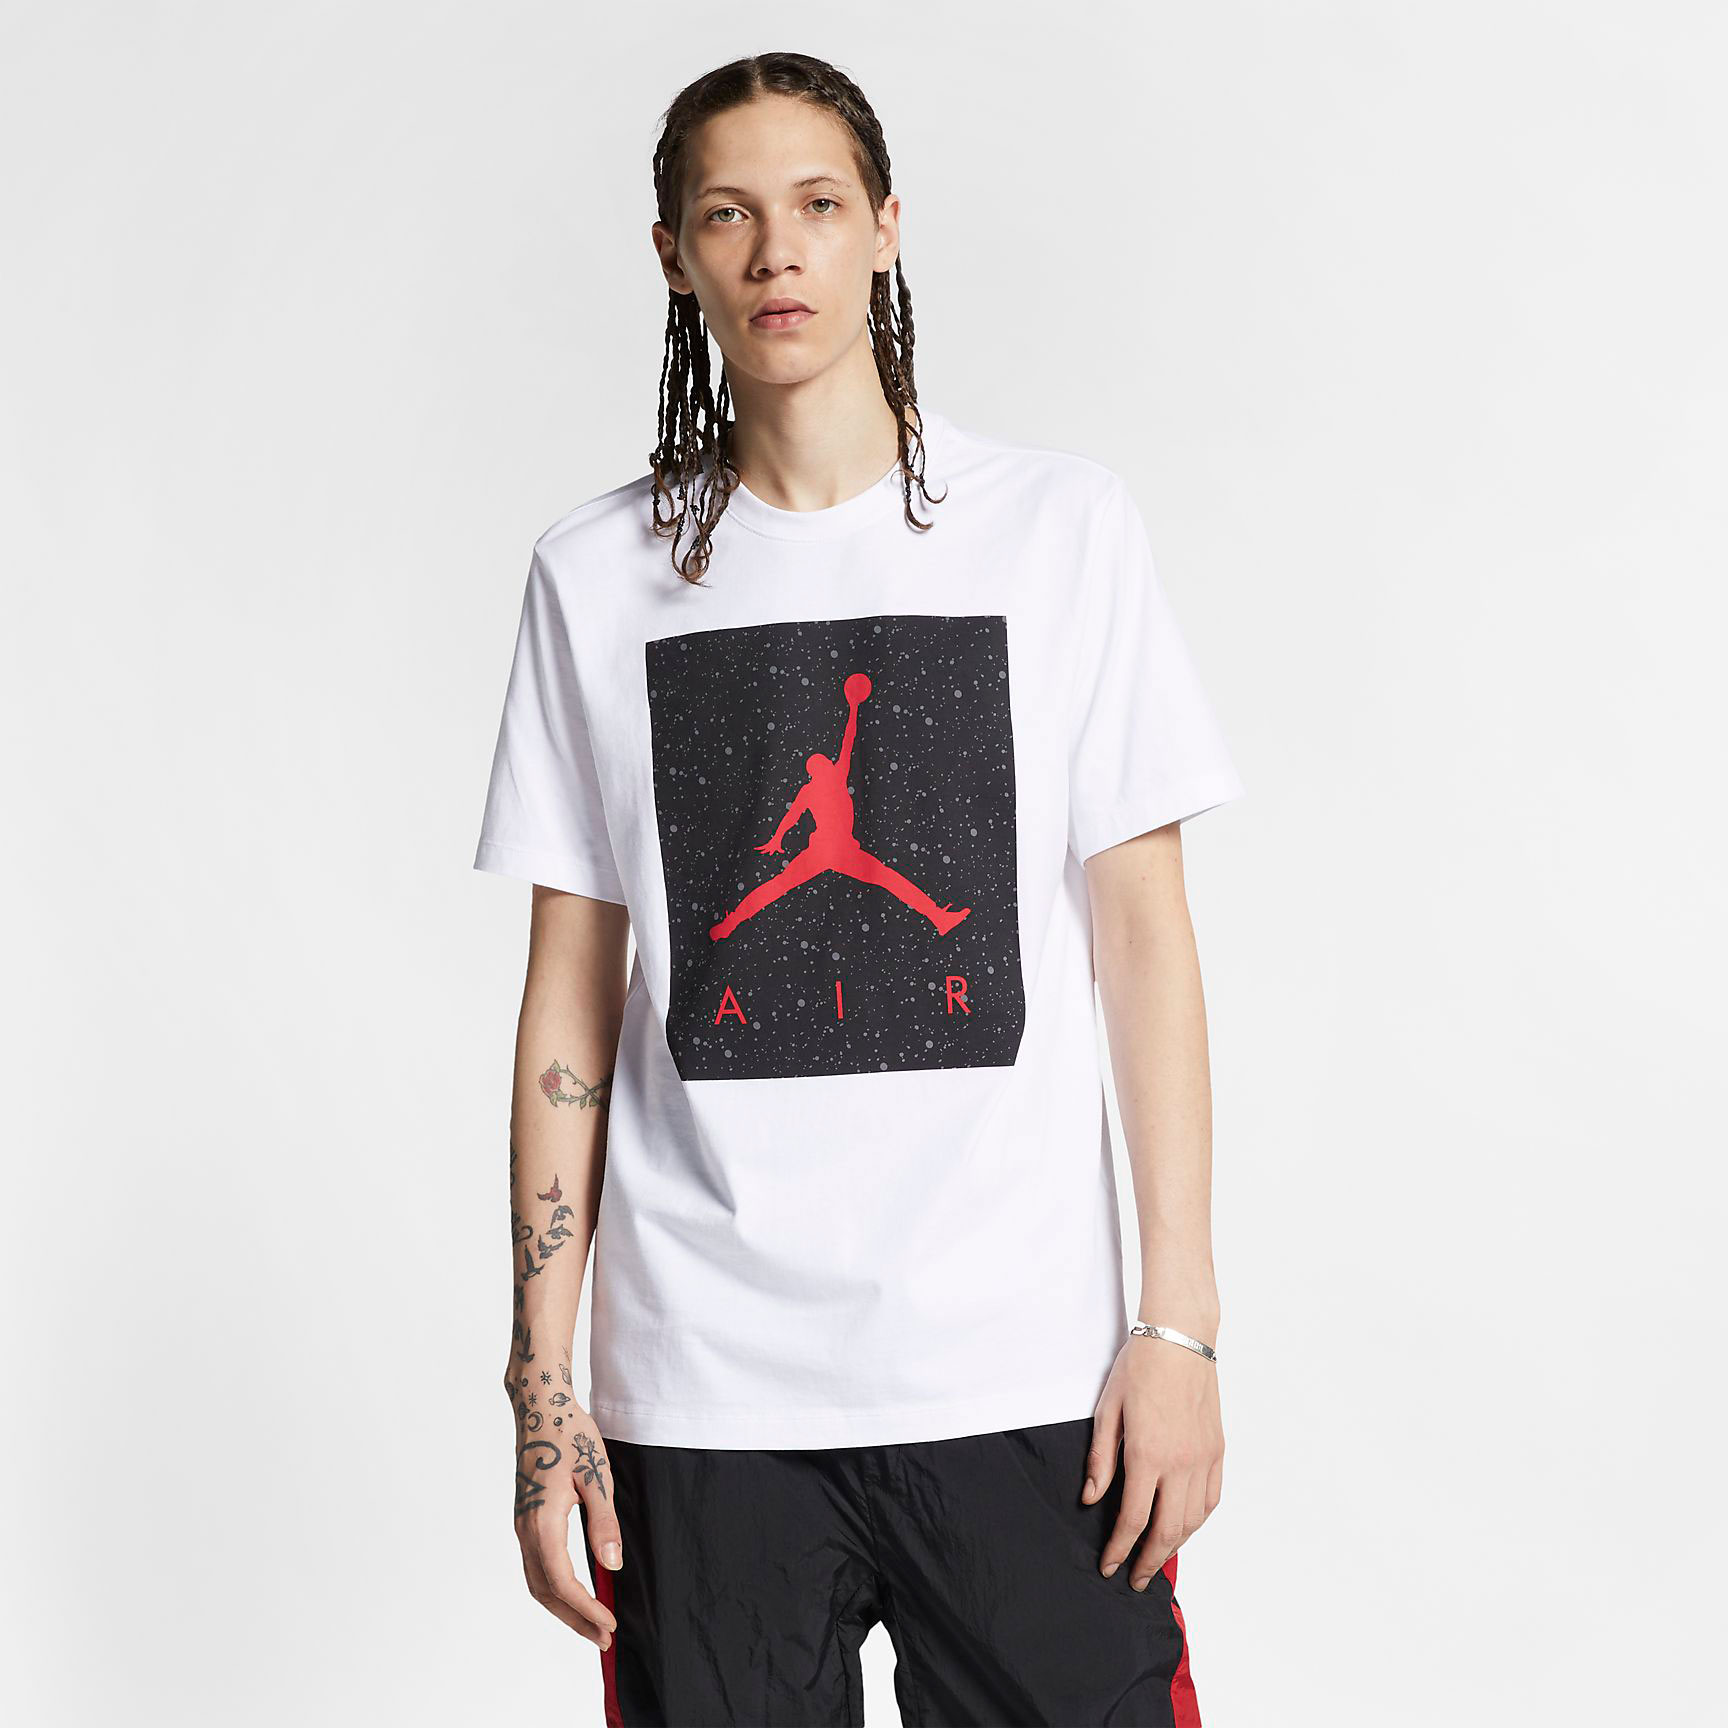 jordan-3-tinker-air-max-1-matching-shirt-1